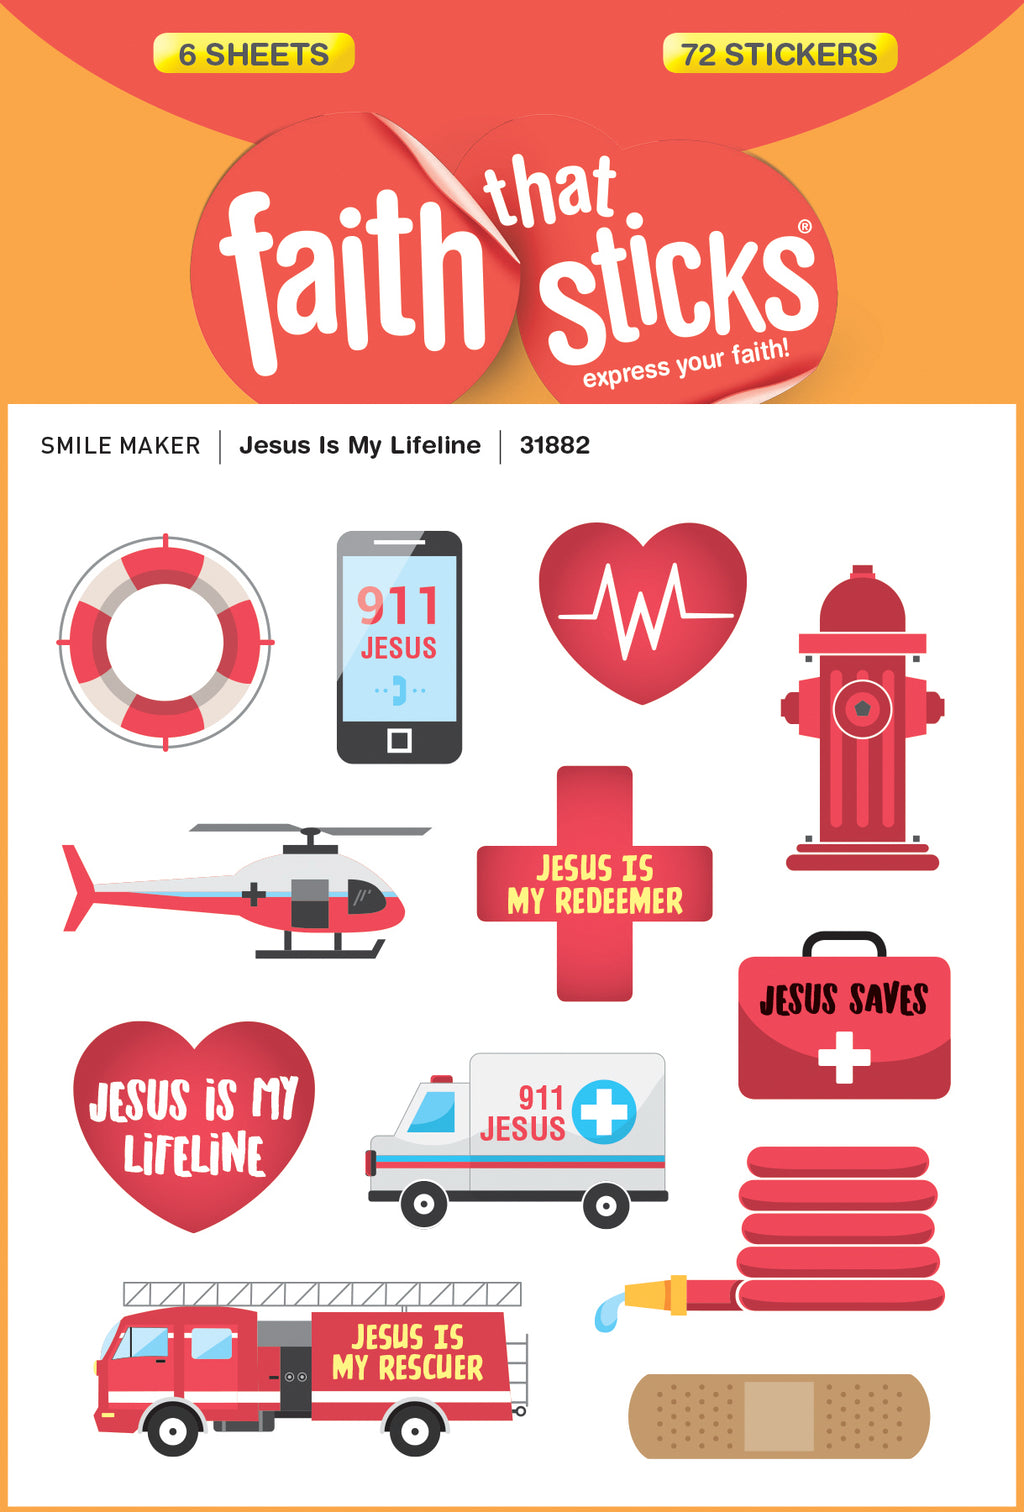 Sticker-Jesus Is My Lifeline (6 Sheets) (Faith That Sticks)